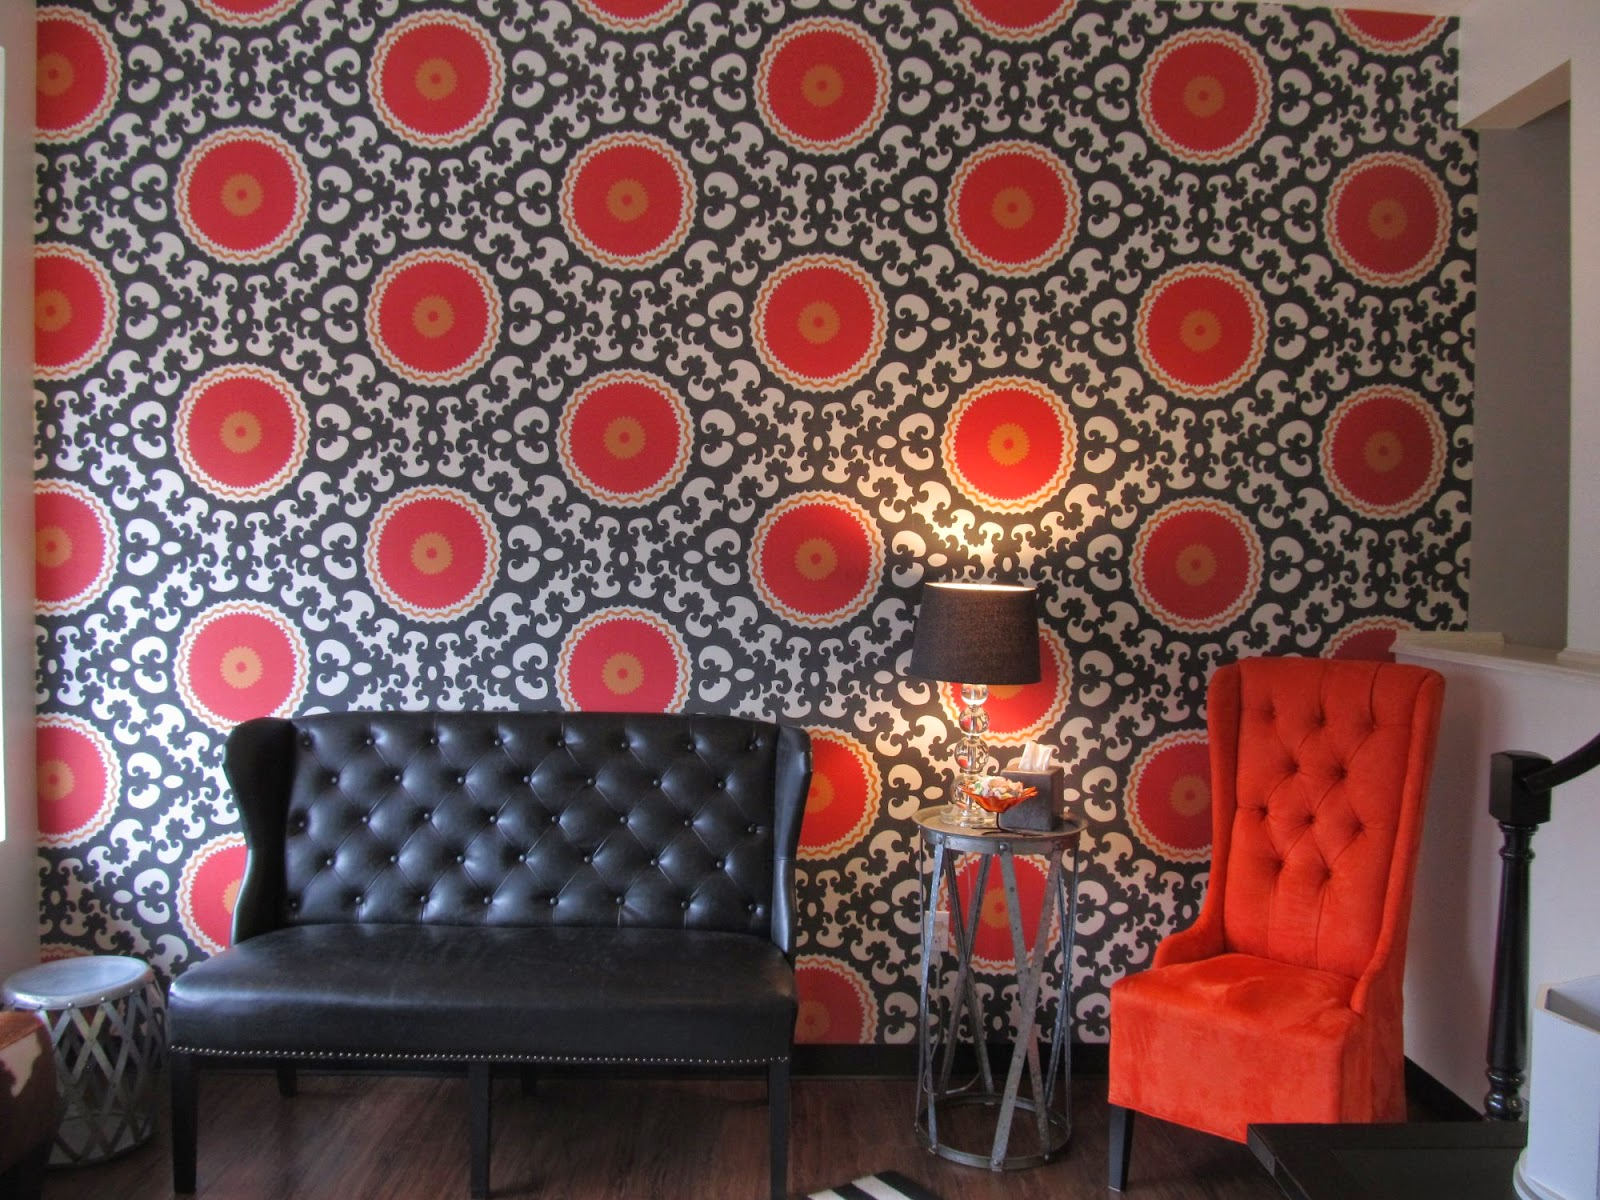 orange chair salon ball with arms bedford mass what 39s new in retail